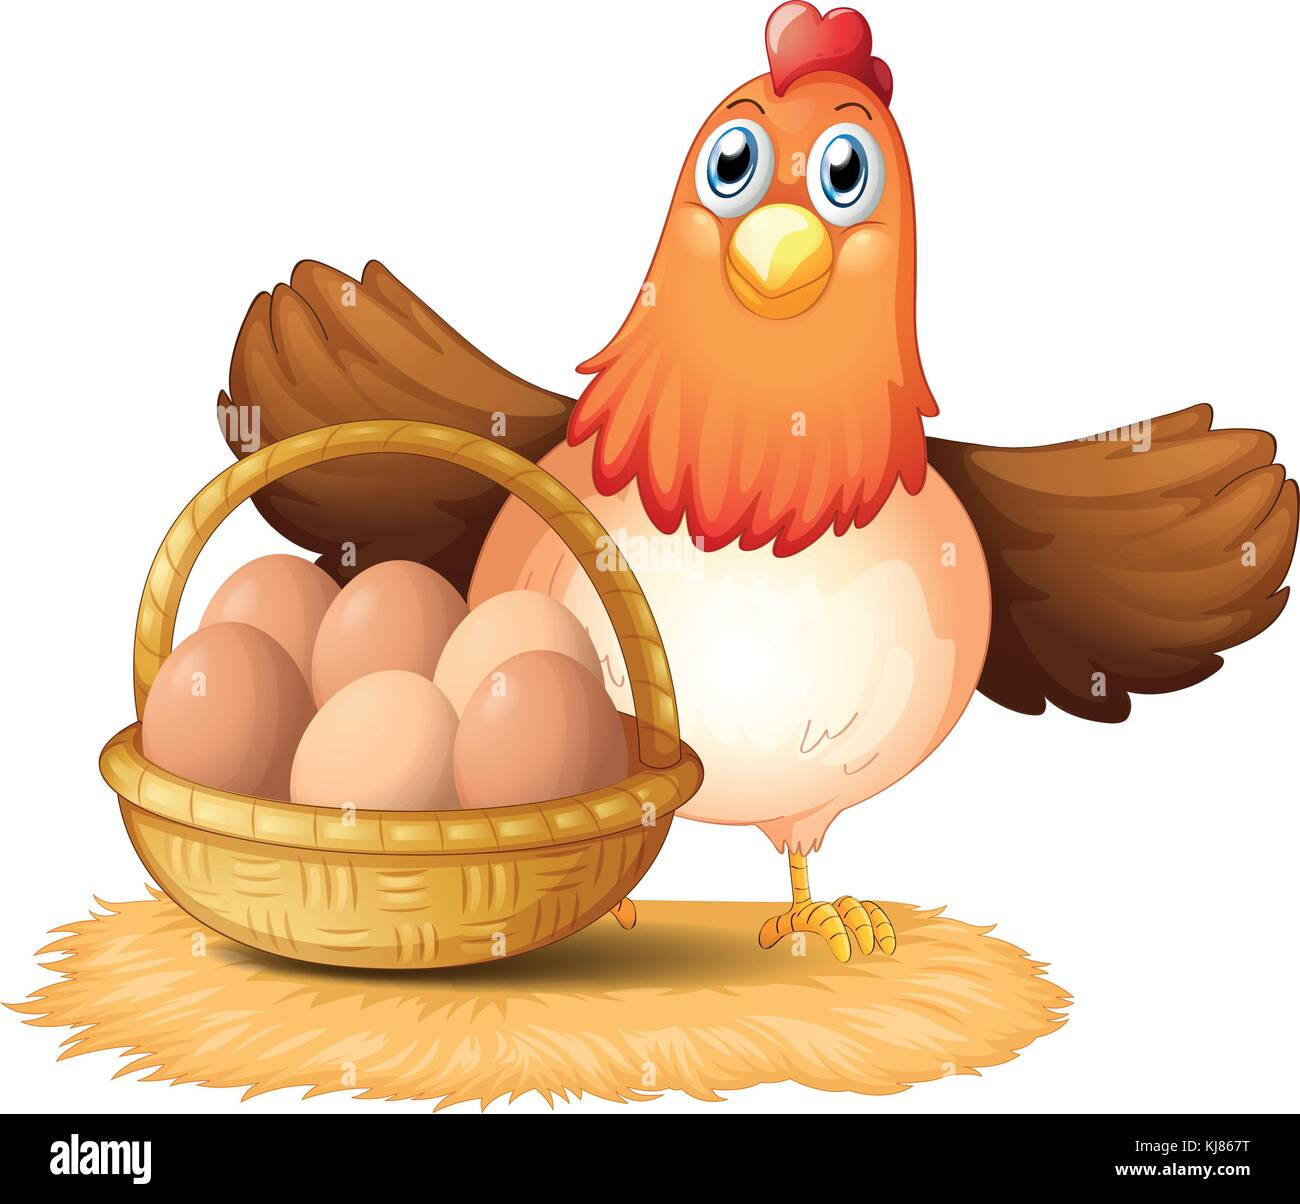 Illustration of a hen and a basket of egg on a white background - Stock Vector